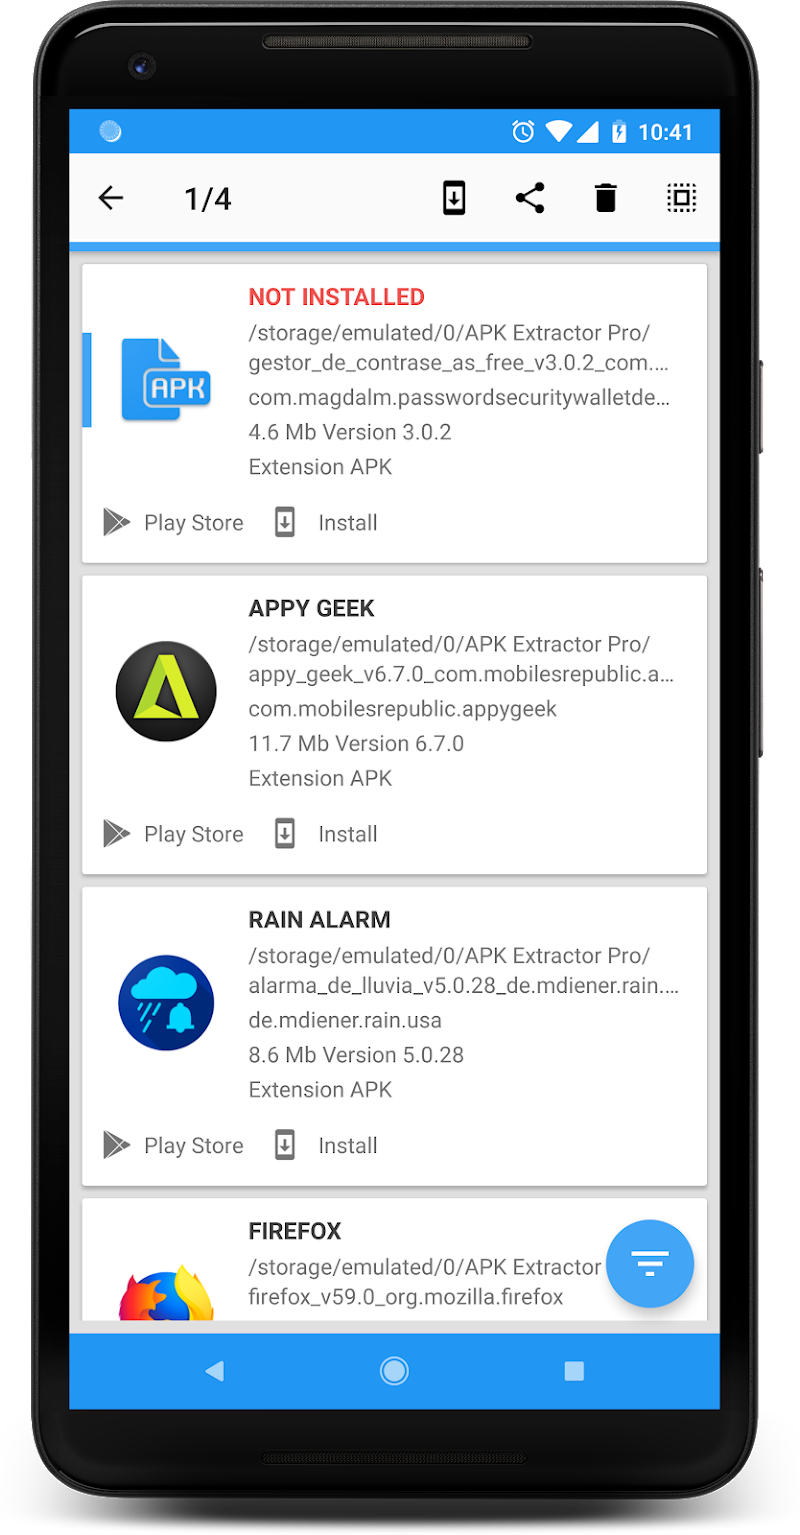 APK INSTALLER PRO Screenshot 1